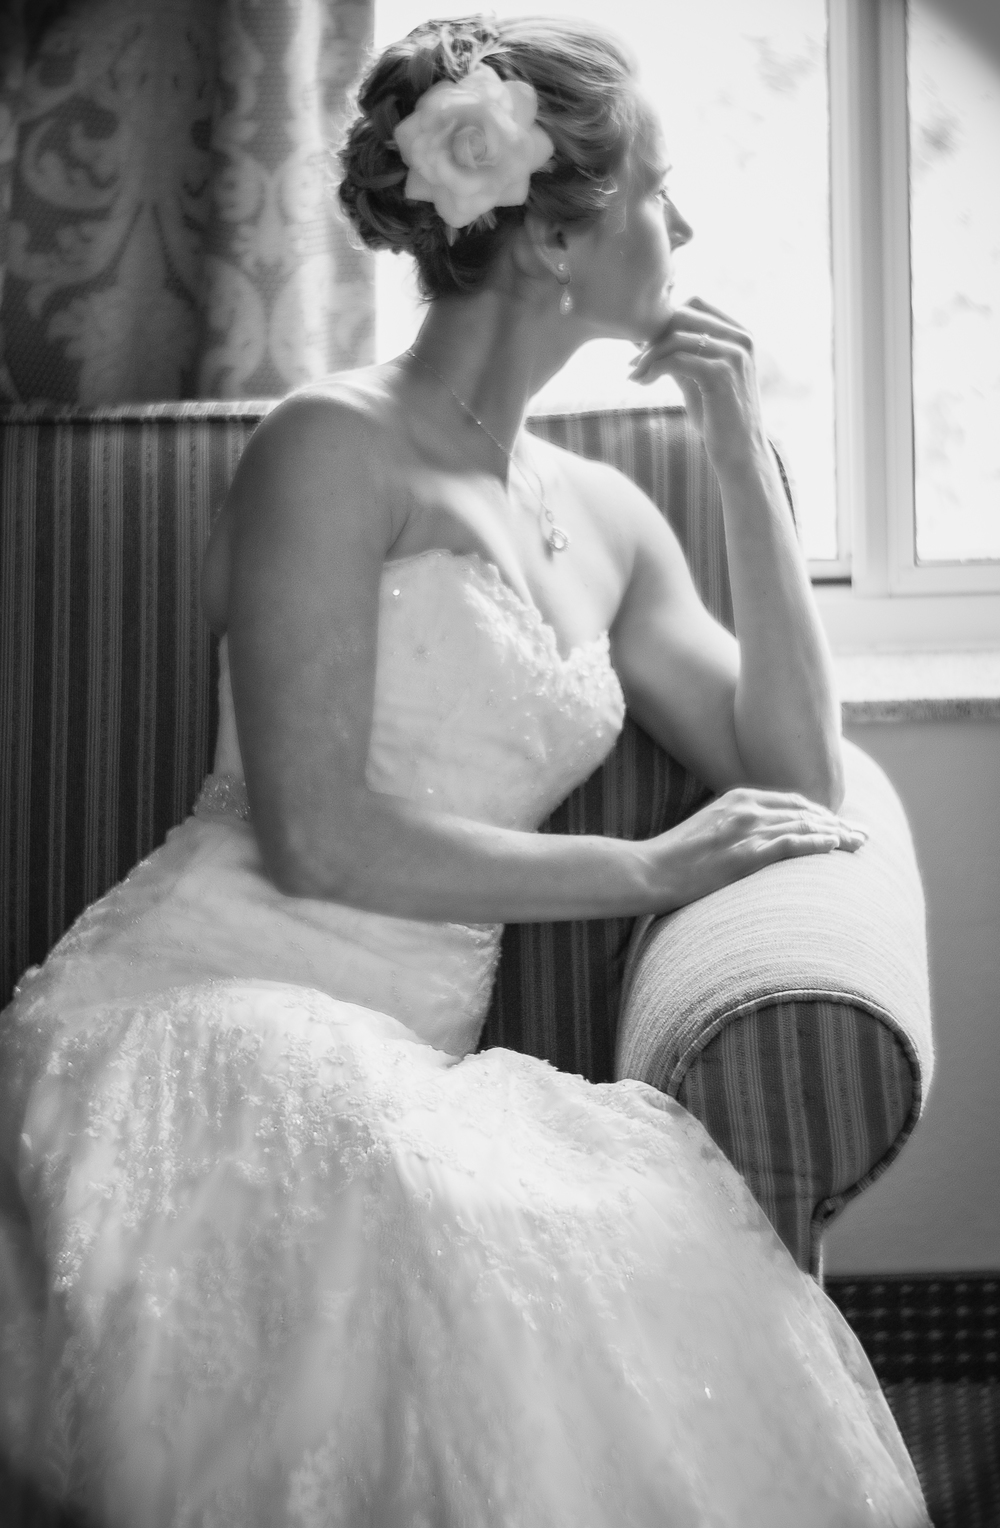 Our lovely Bride, Jean, who owned this moment in time. Photo Phrame Photography, Saratoga, NY